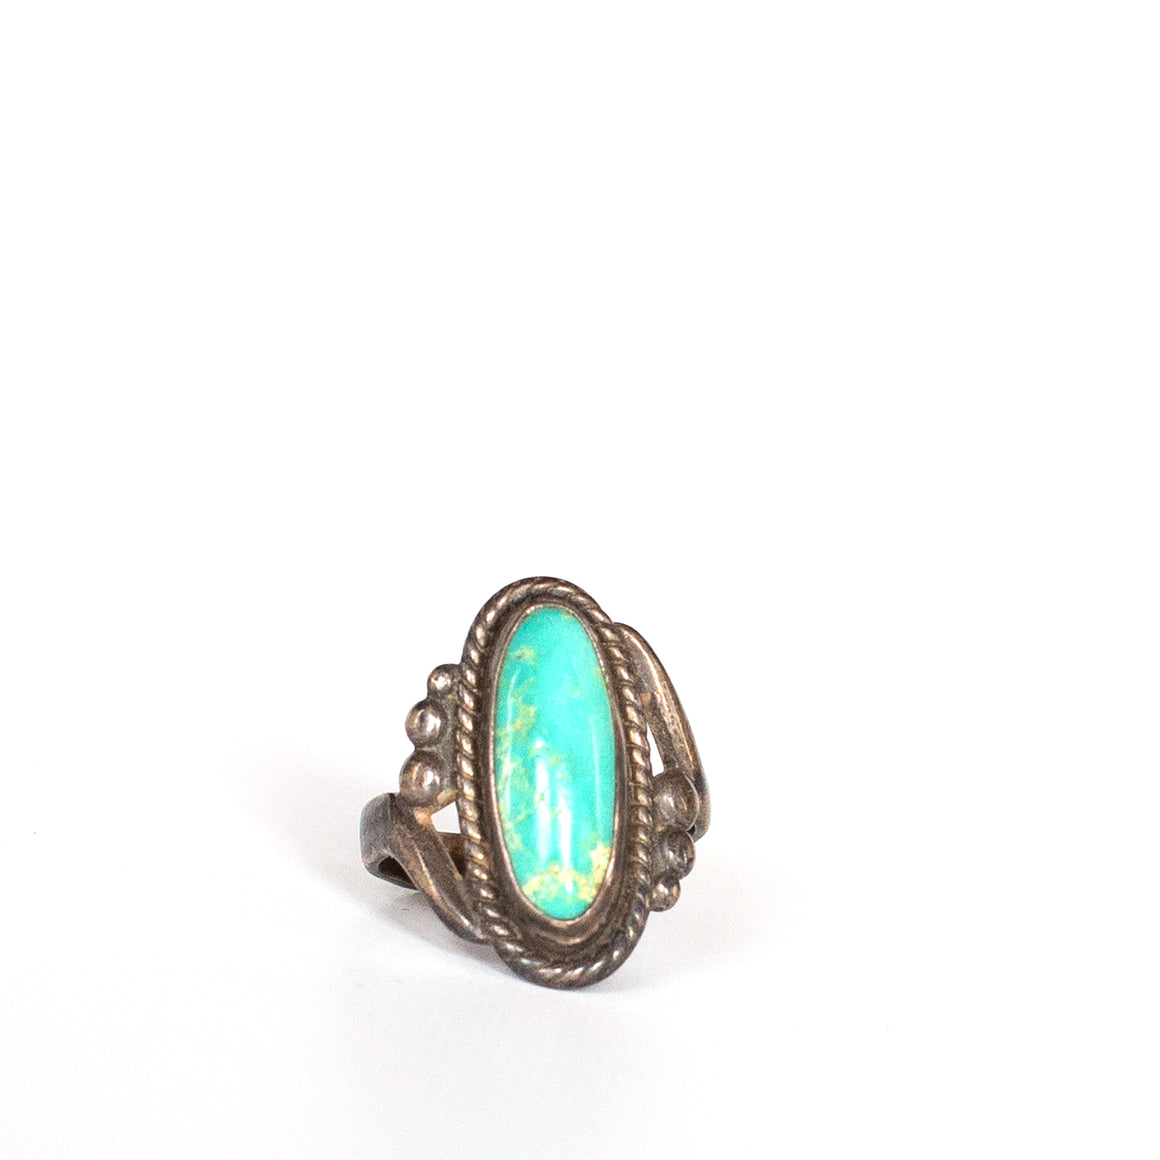 VINTAGE JEWELRY | STERLING TURQUOISE RING (SIZE 5)